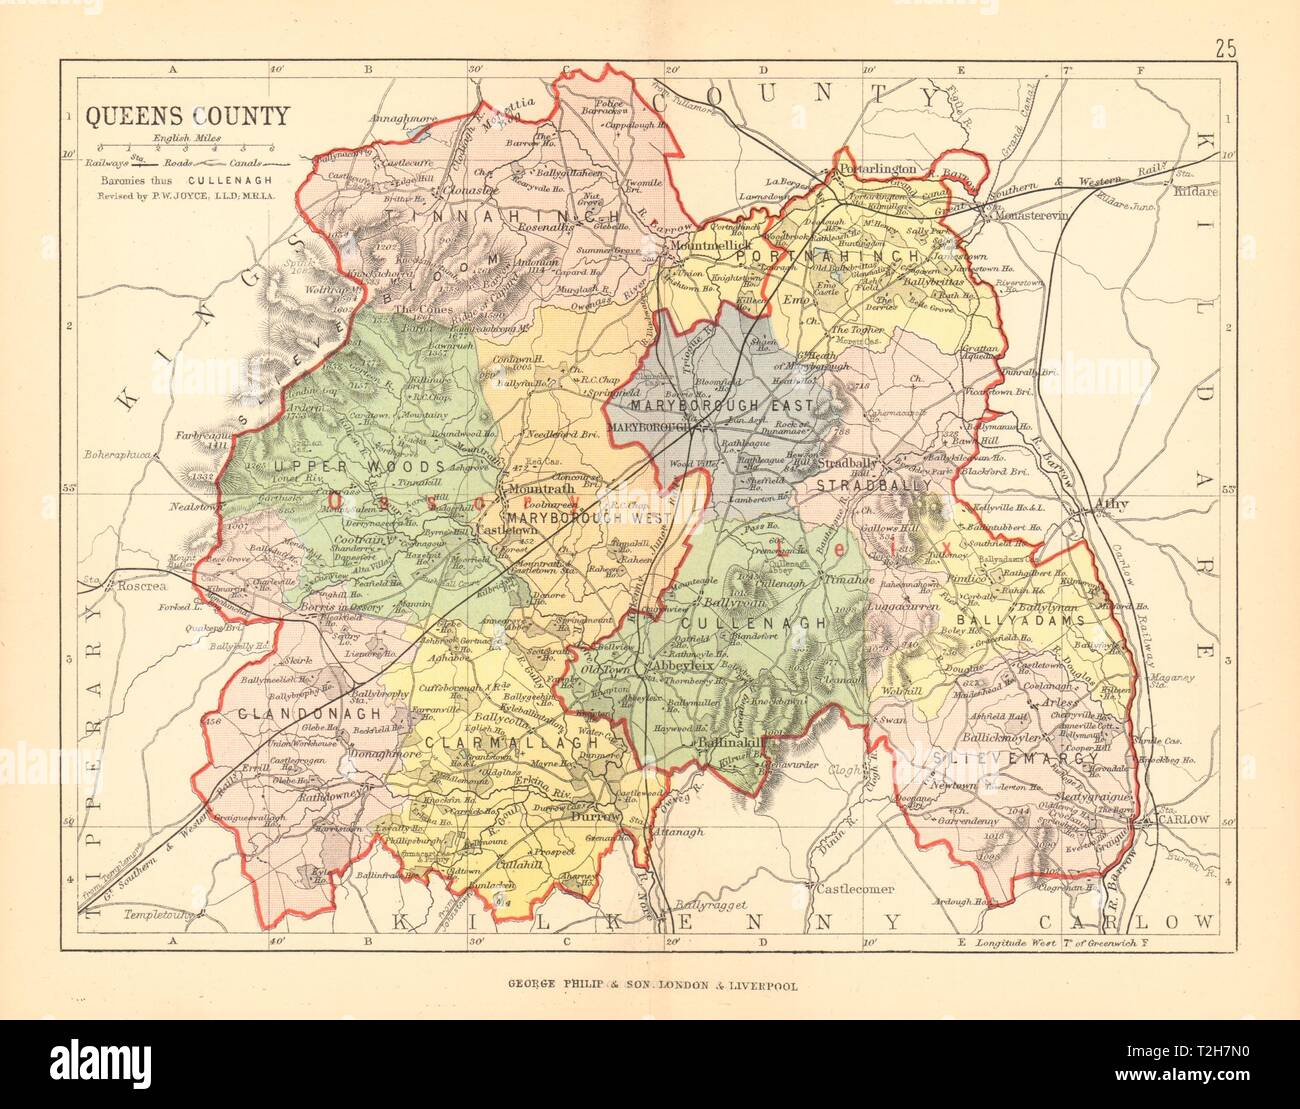 QUEENS COUNTY (LAOIS) . Antique county map. Leinster ... on